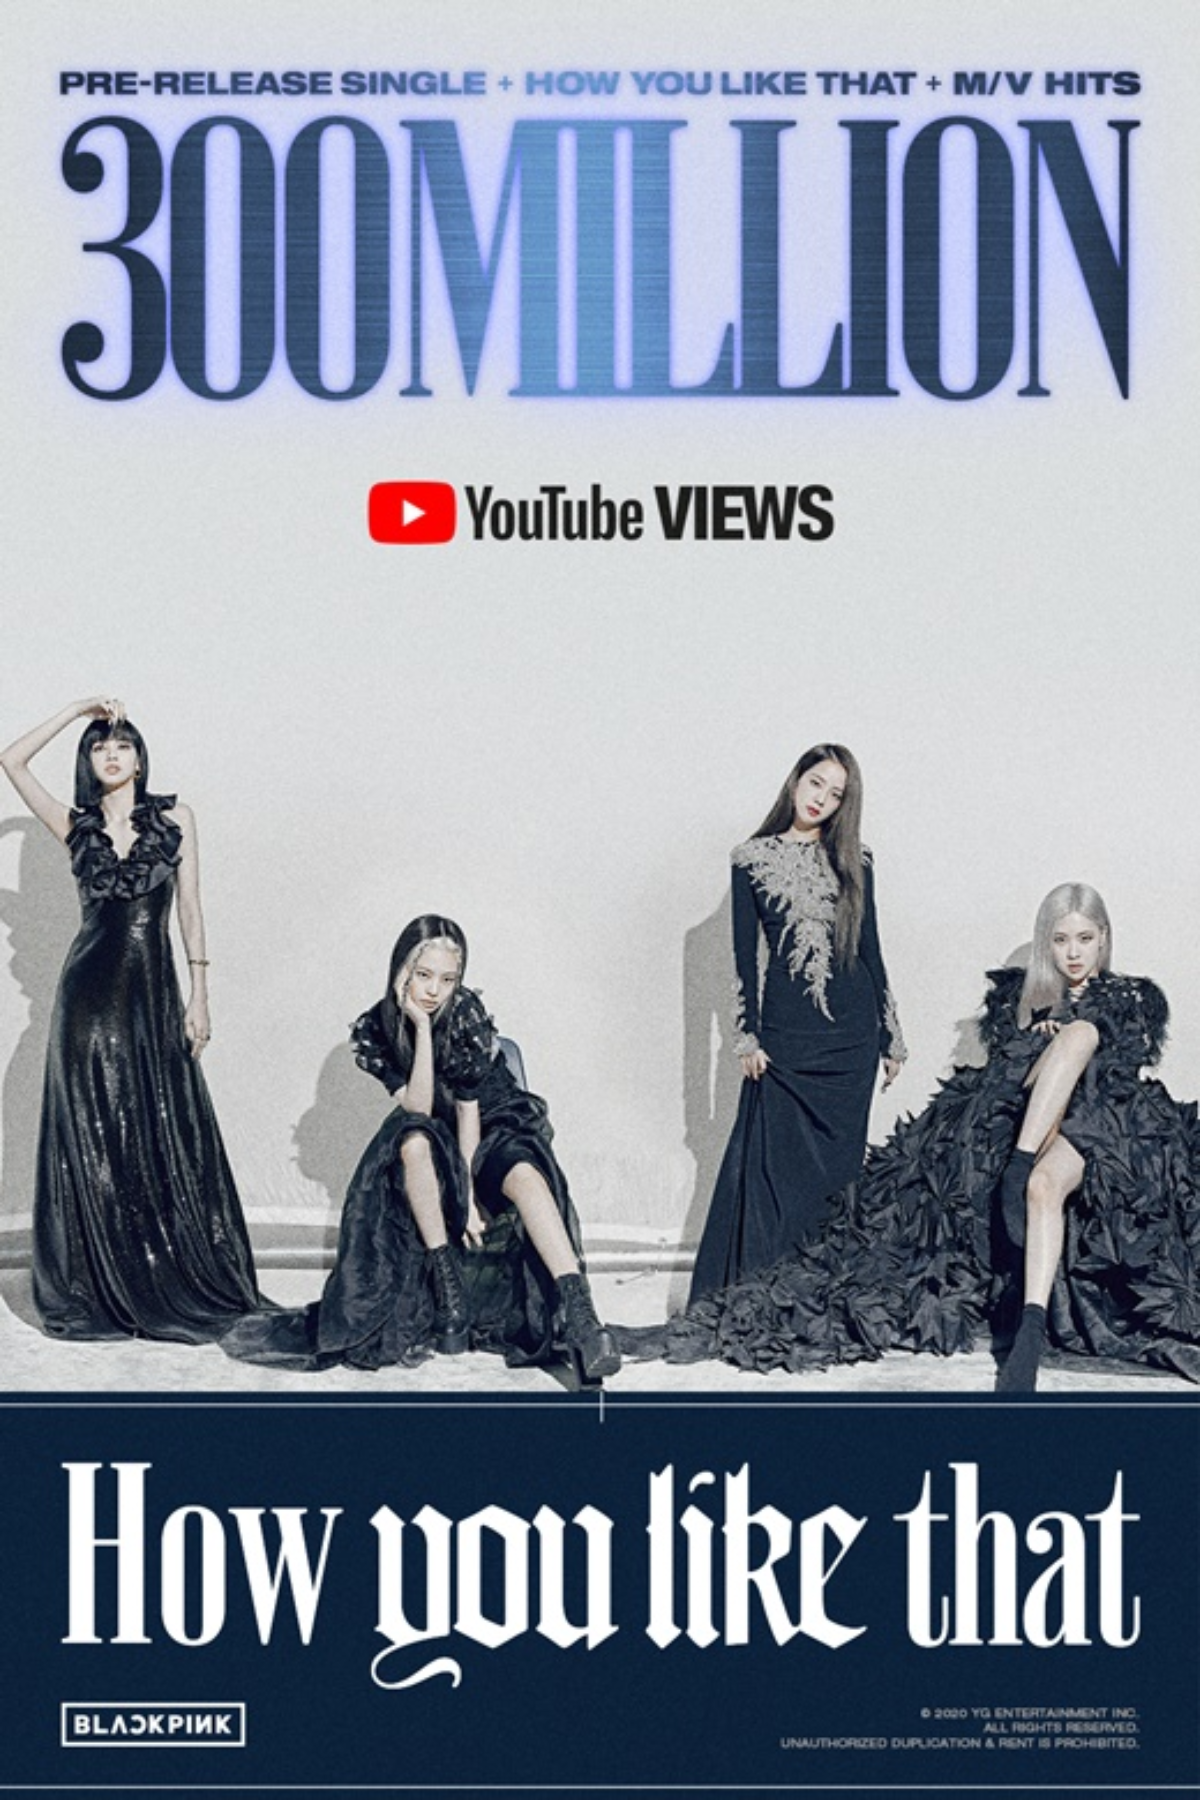 """BLACKPINK """"How You Like That"""" - Music Video has Surpassed 300 Million Views"""